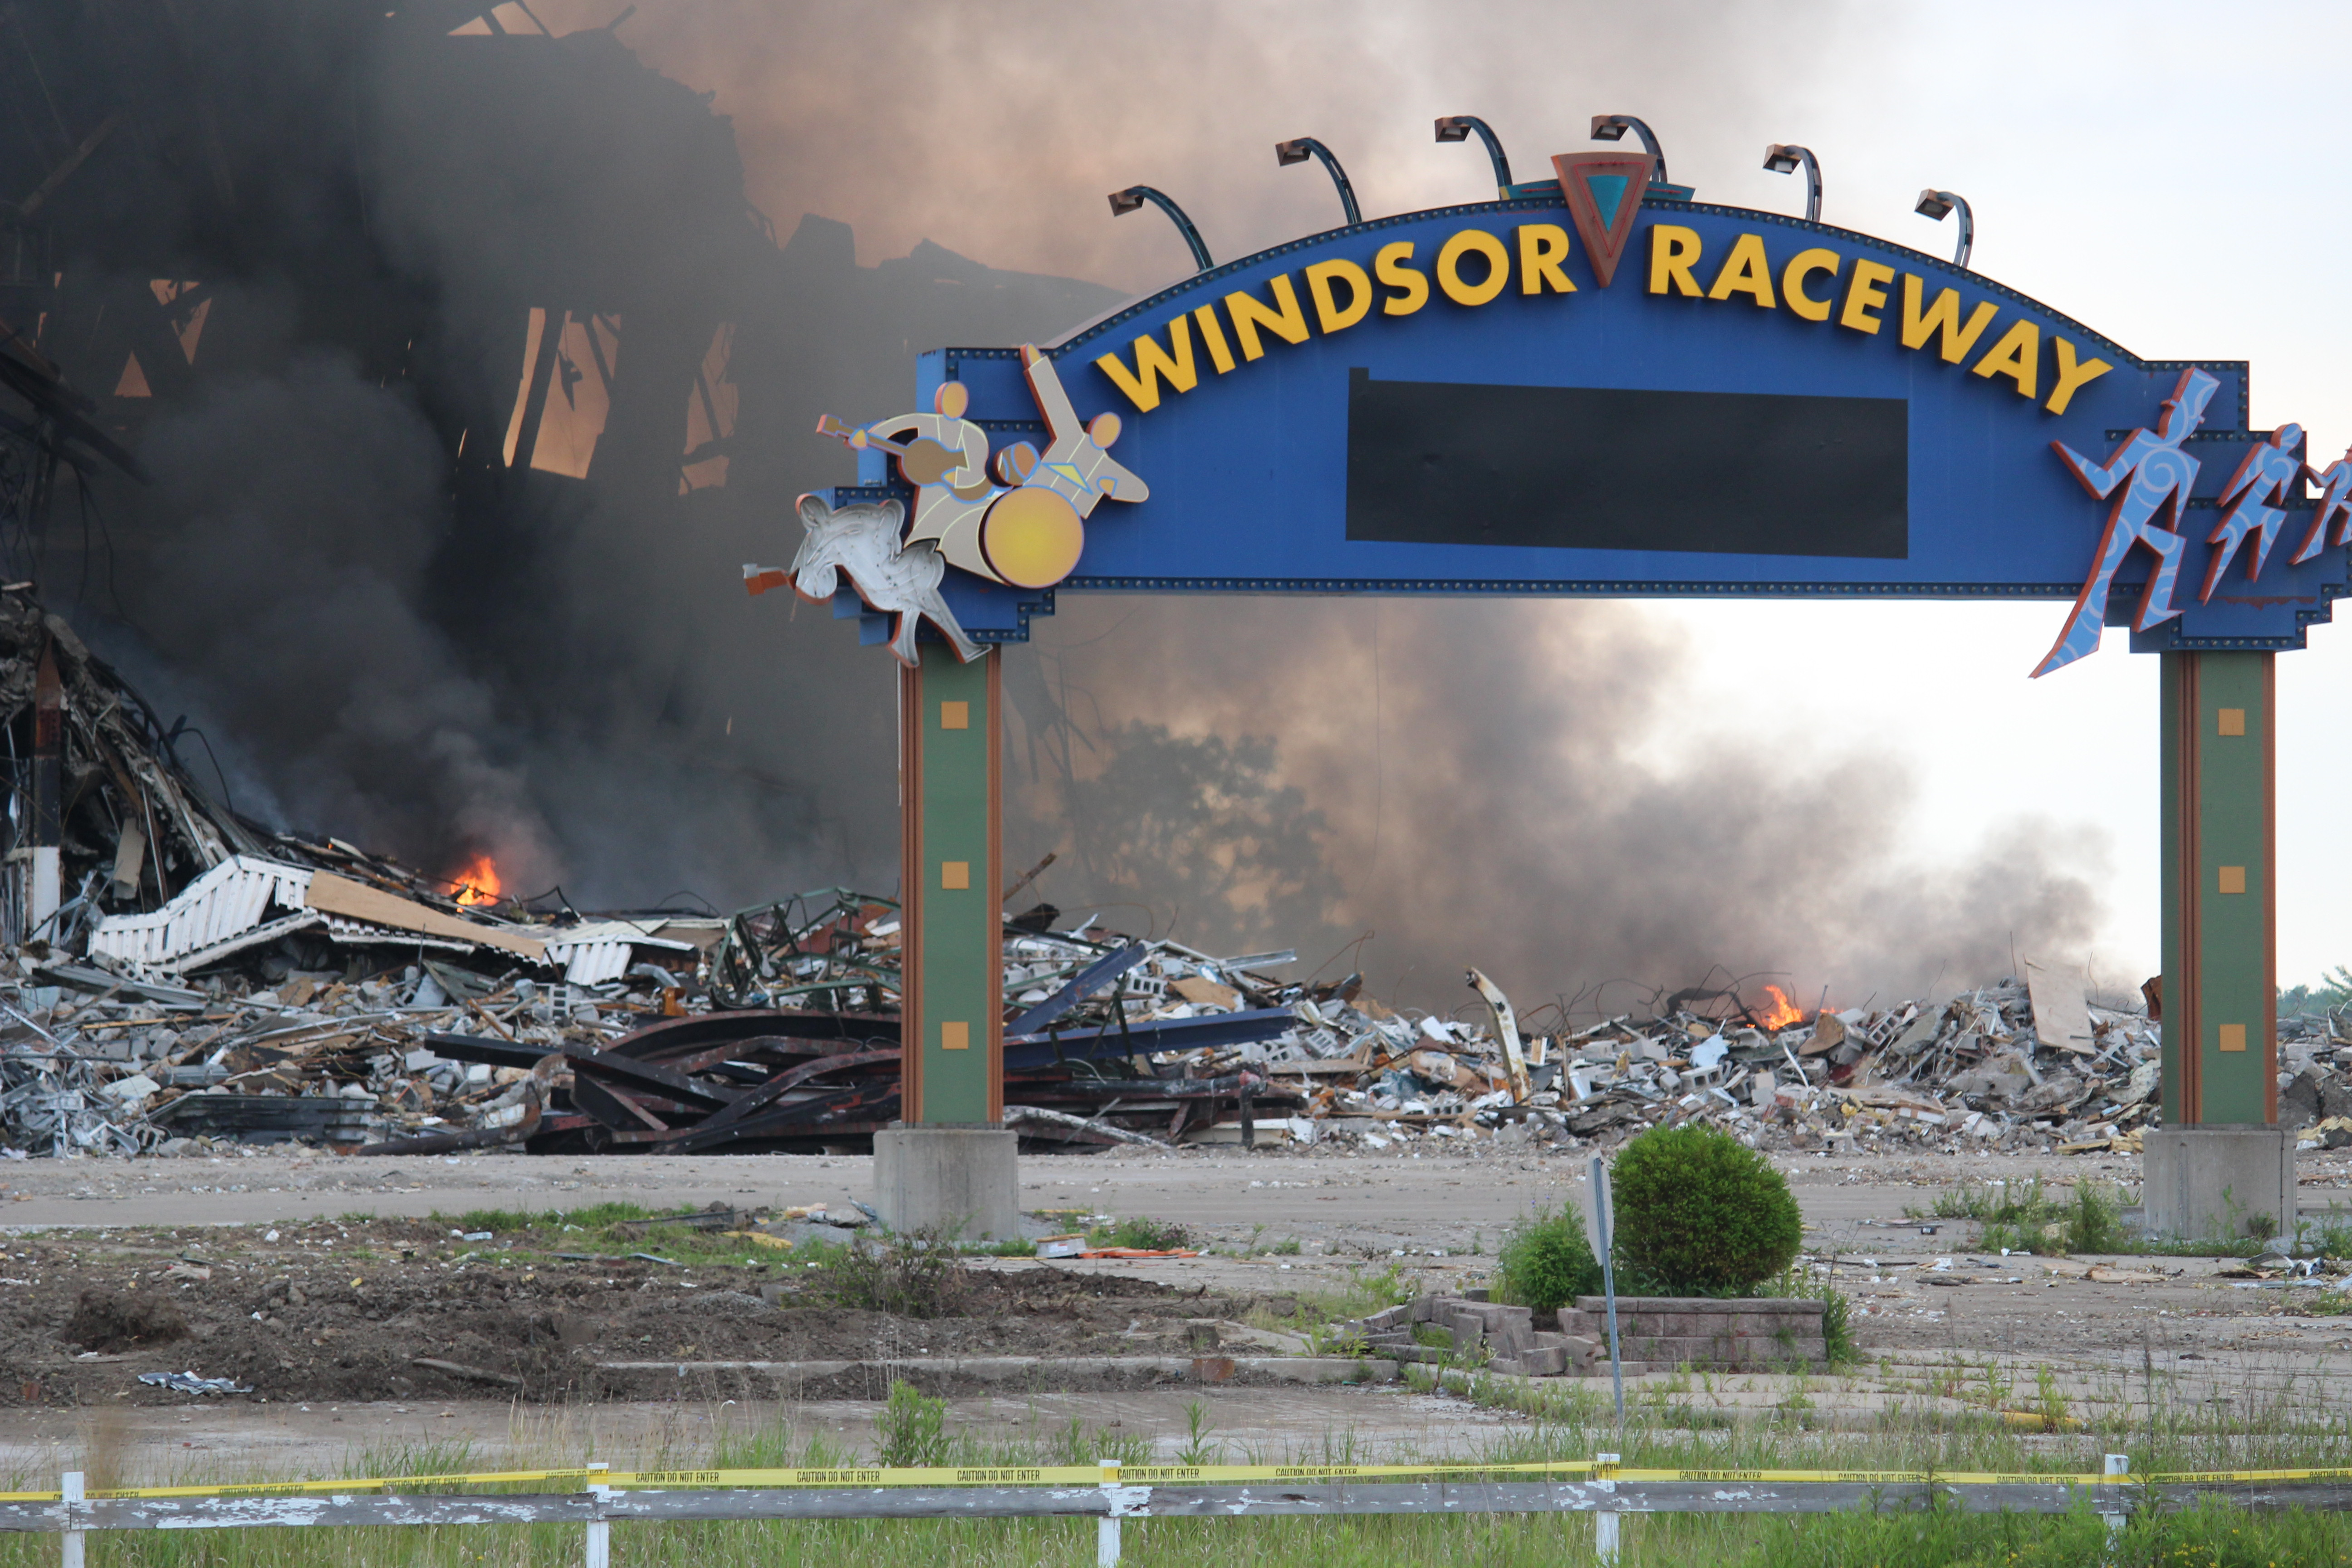 Fire smolders at Windsor Raceway July 1, 2015. (Photo by Adelle Loiselle)